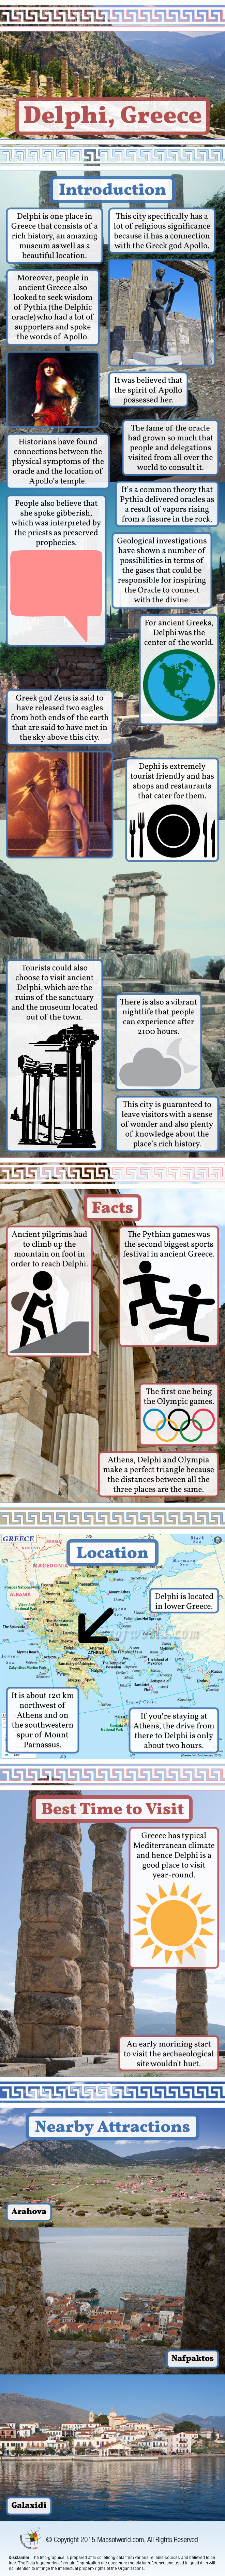 Delphi, Greece - Facts & Infographic